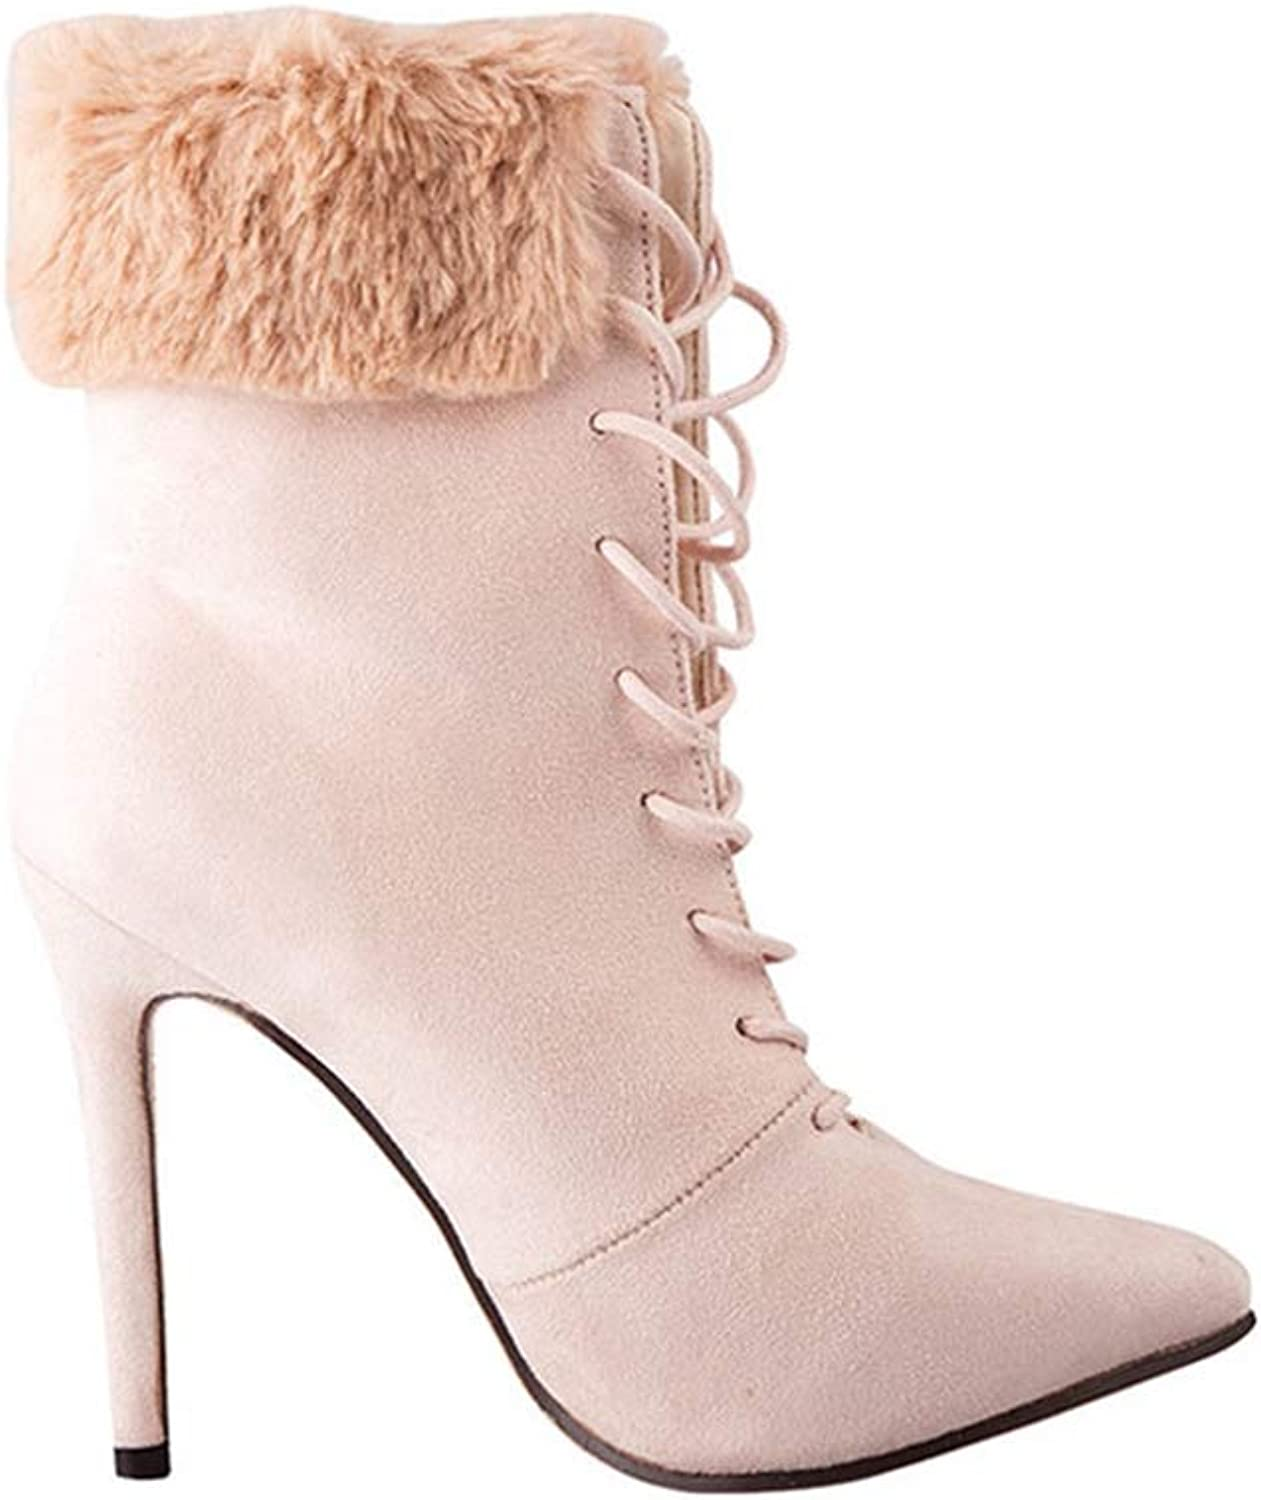 Woman Ankle Boots Lace Up Faux Fur Pointed Toe High Thin Heel Ladies Sexy Fashion Party Winter Short Boots